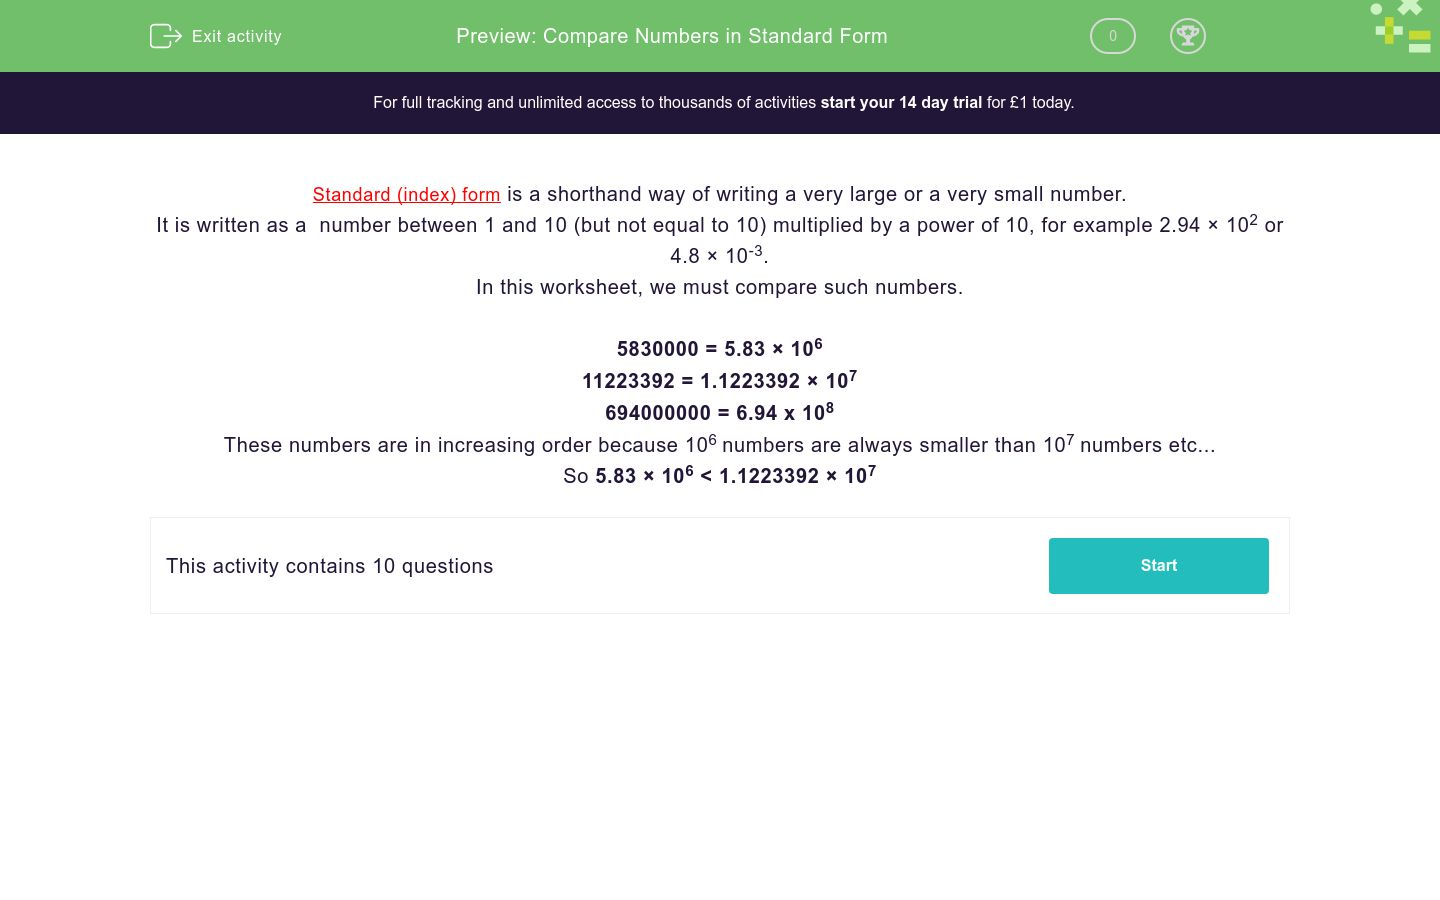 'Compare Numbers in Standard Form' worksheet